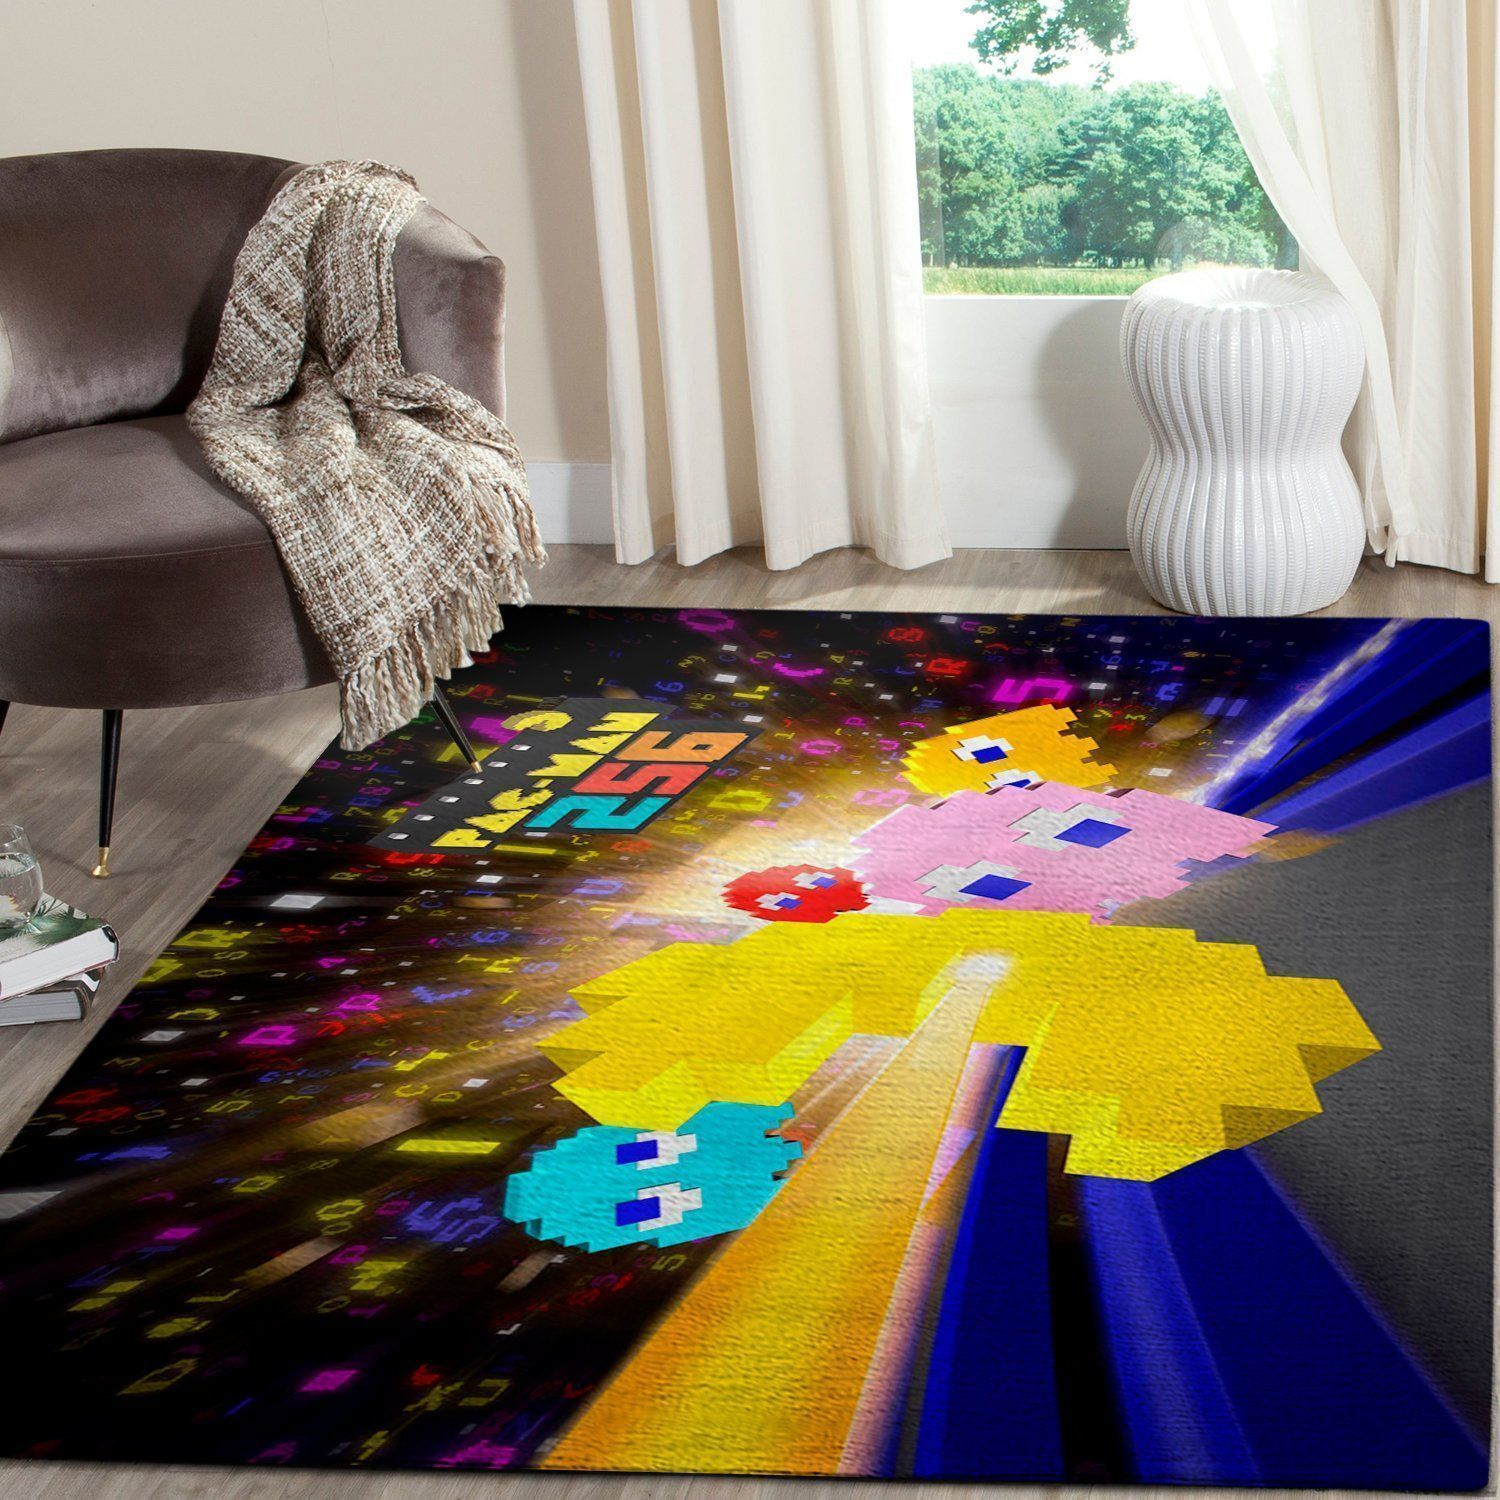 Pacman Area Rug Video Game Carpet, Gamer Living Room Rugs, Floor Decor 10116